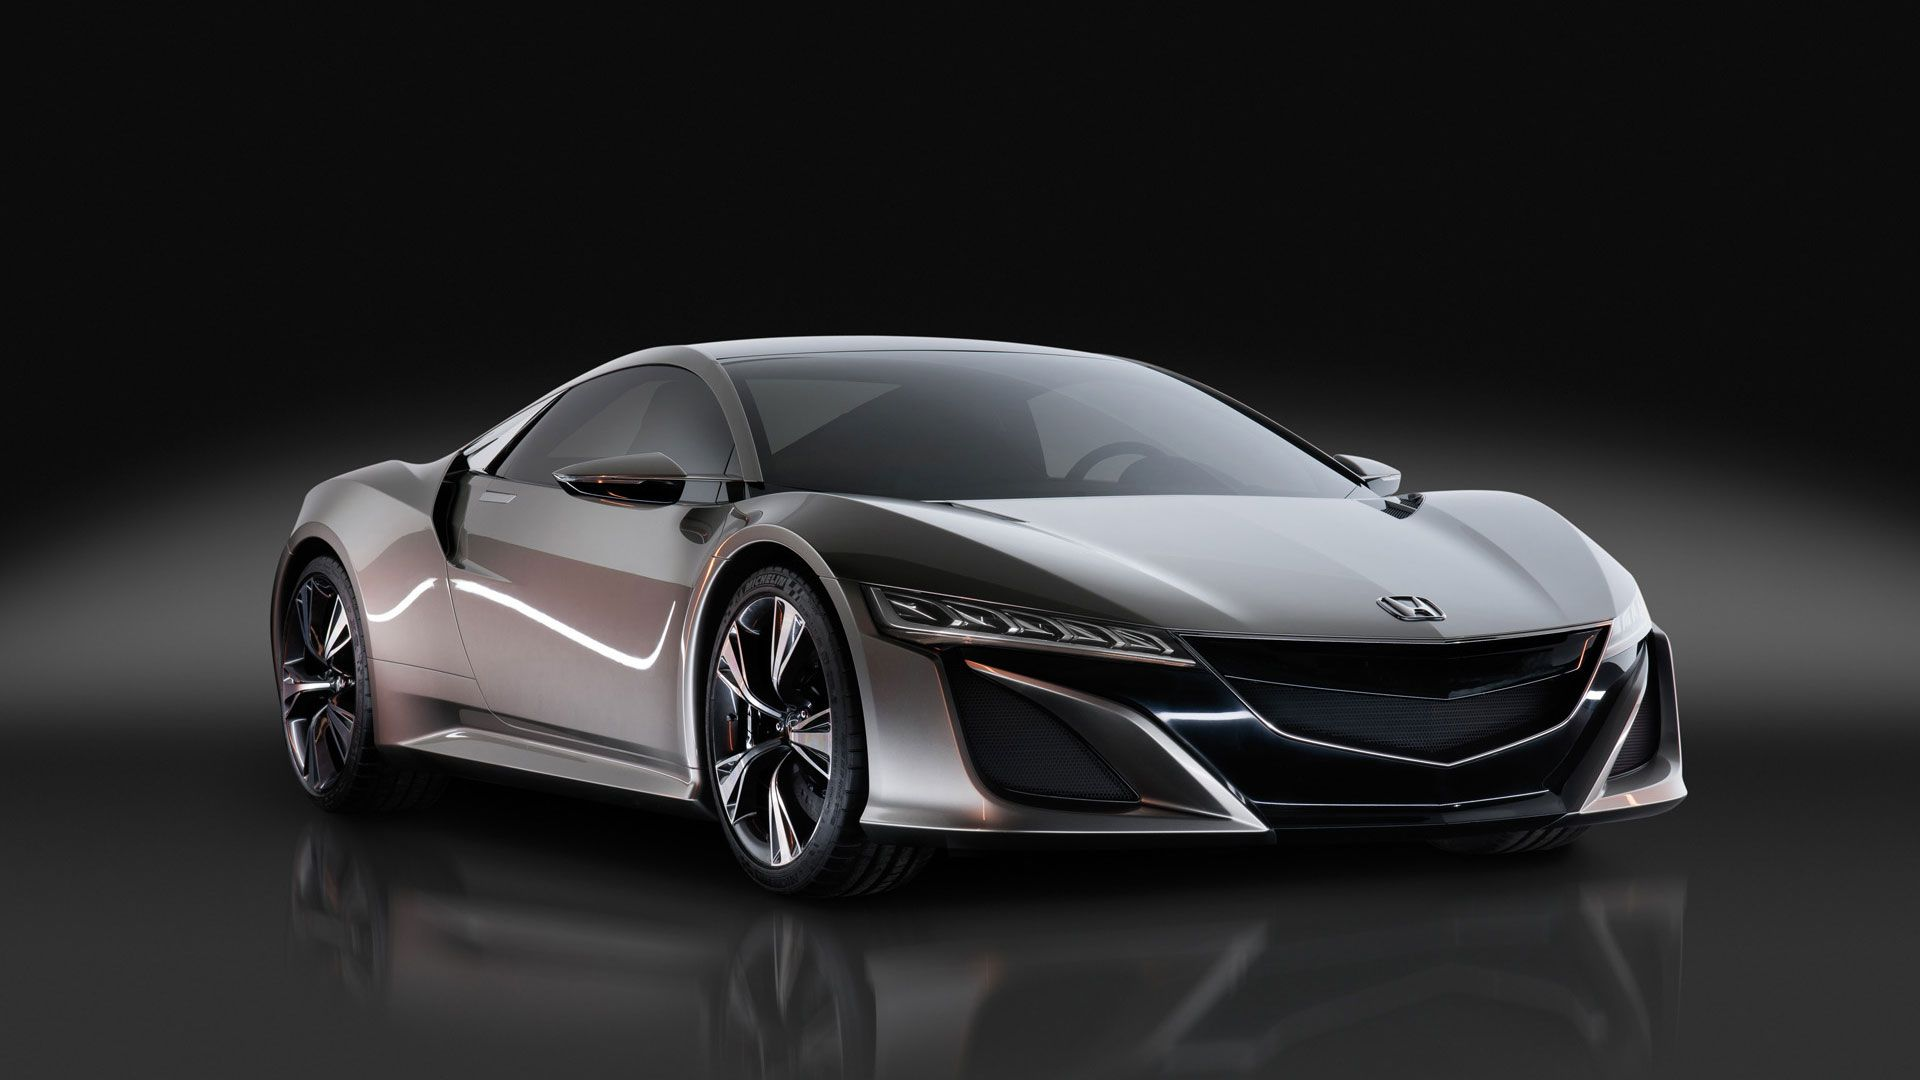 acura nsx wallpapers : get free top quality acura nsx wallpapers for